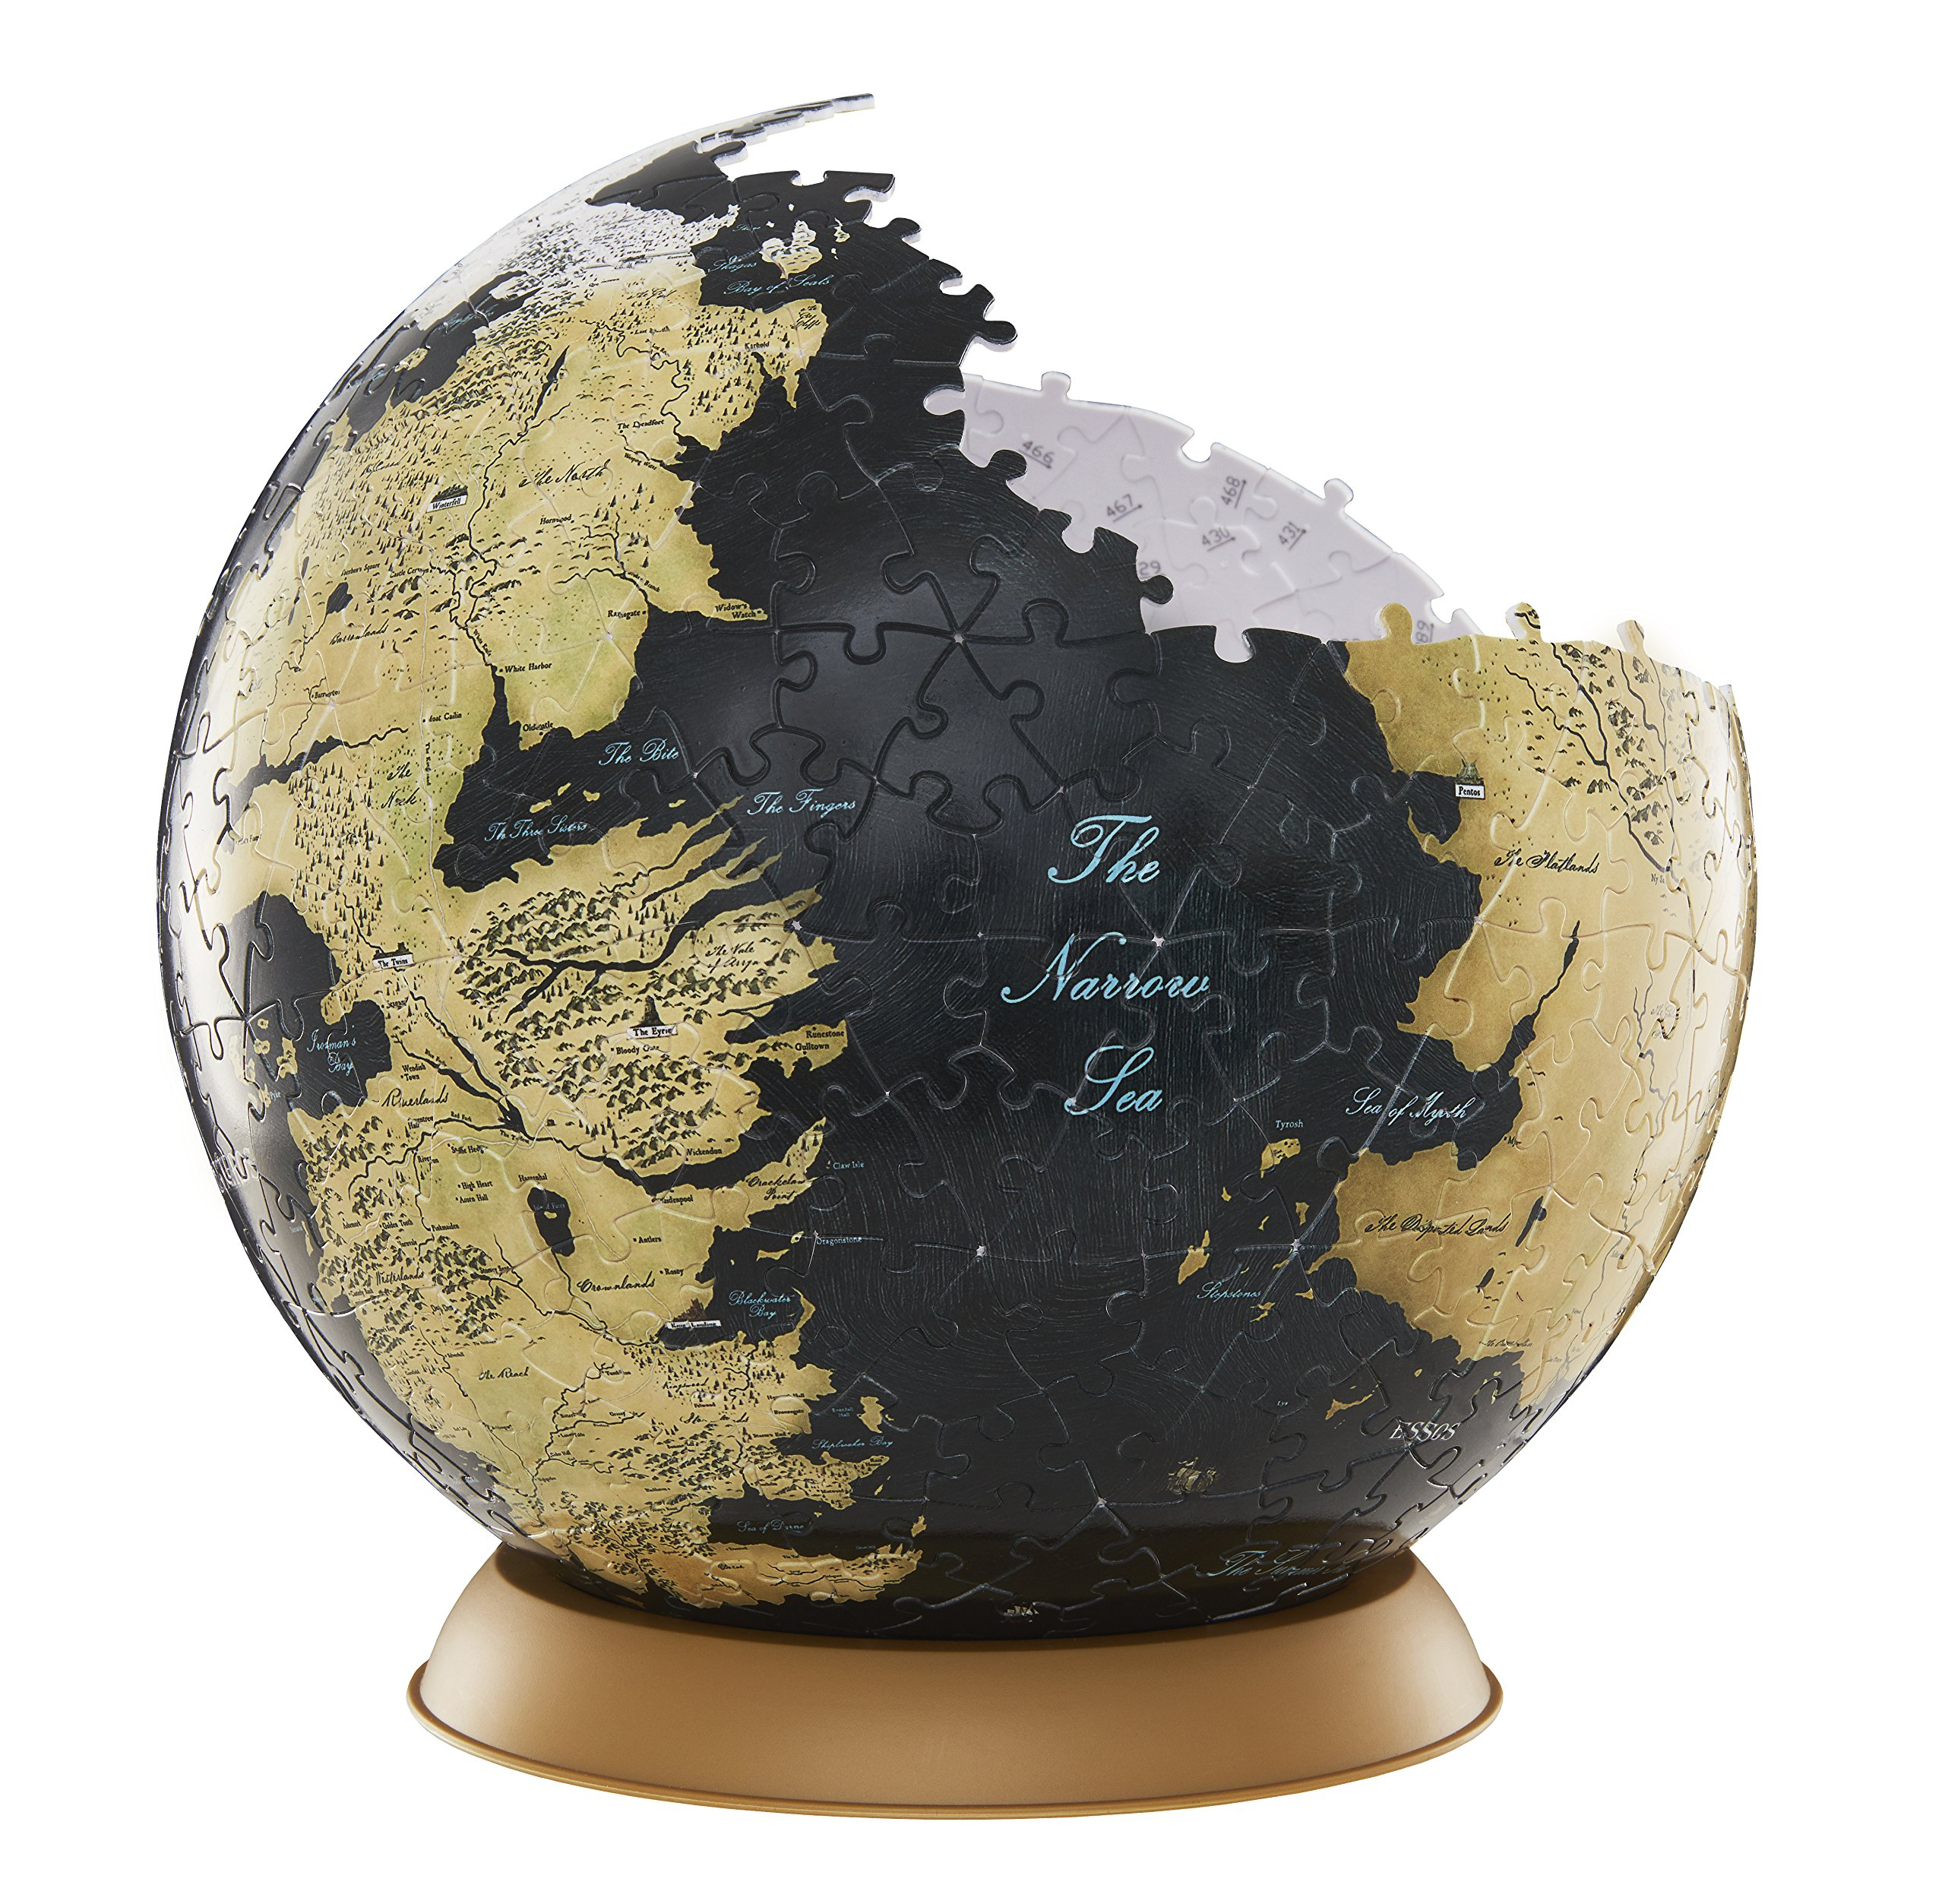 4D Cityscape Game of Thrones 3D Globe Puzzle (540 Piece), 9''